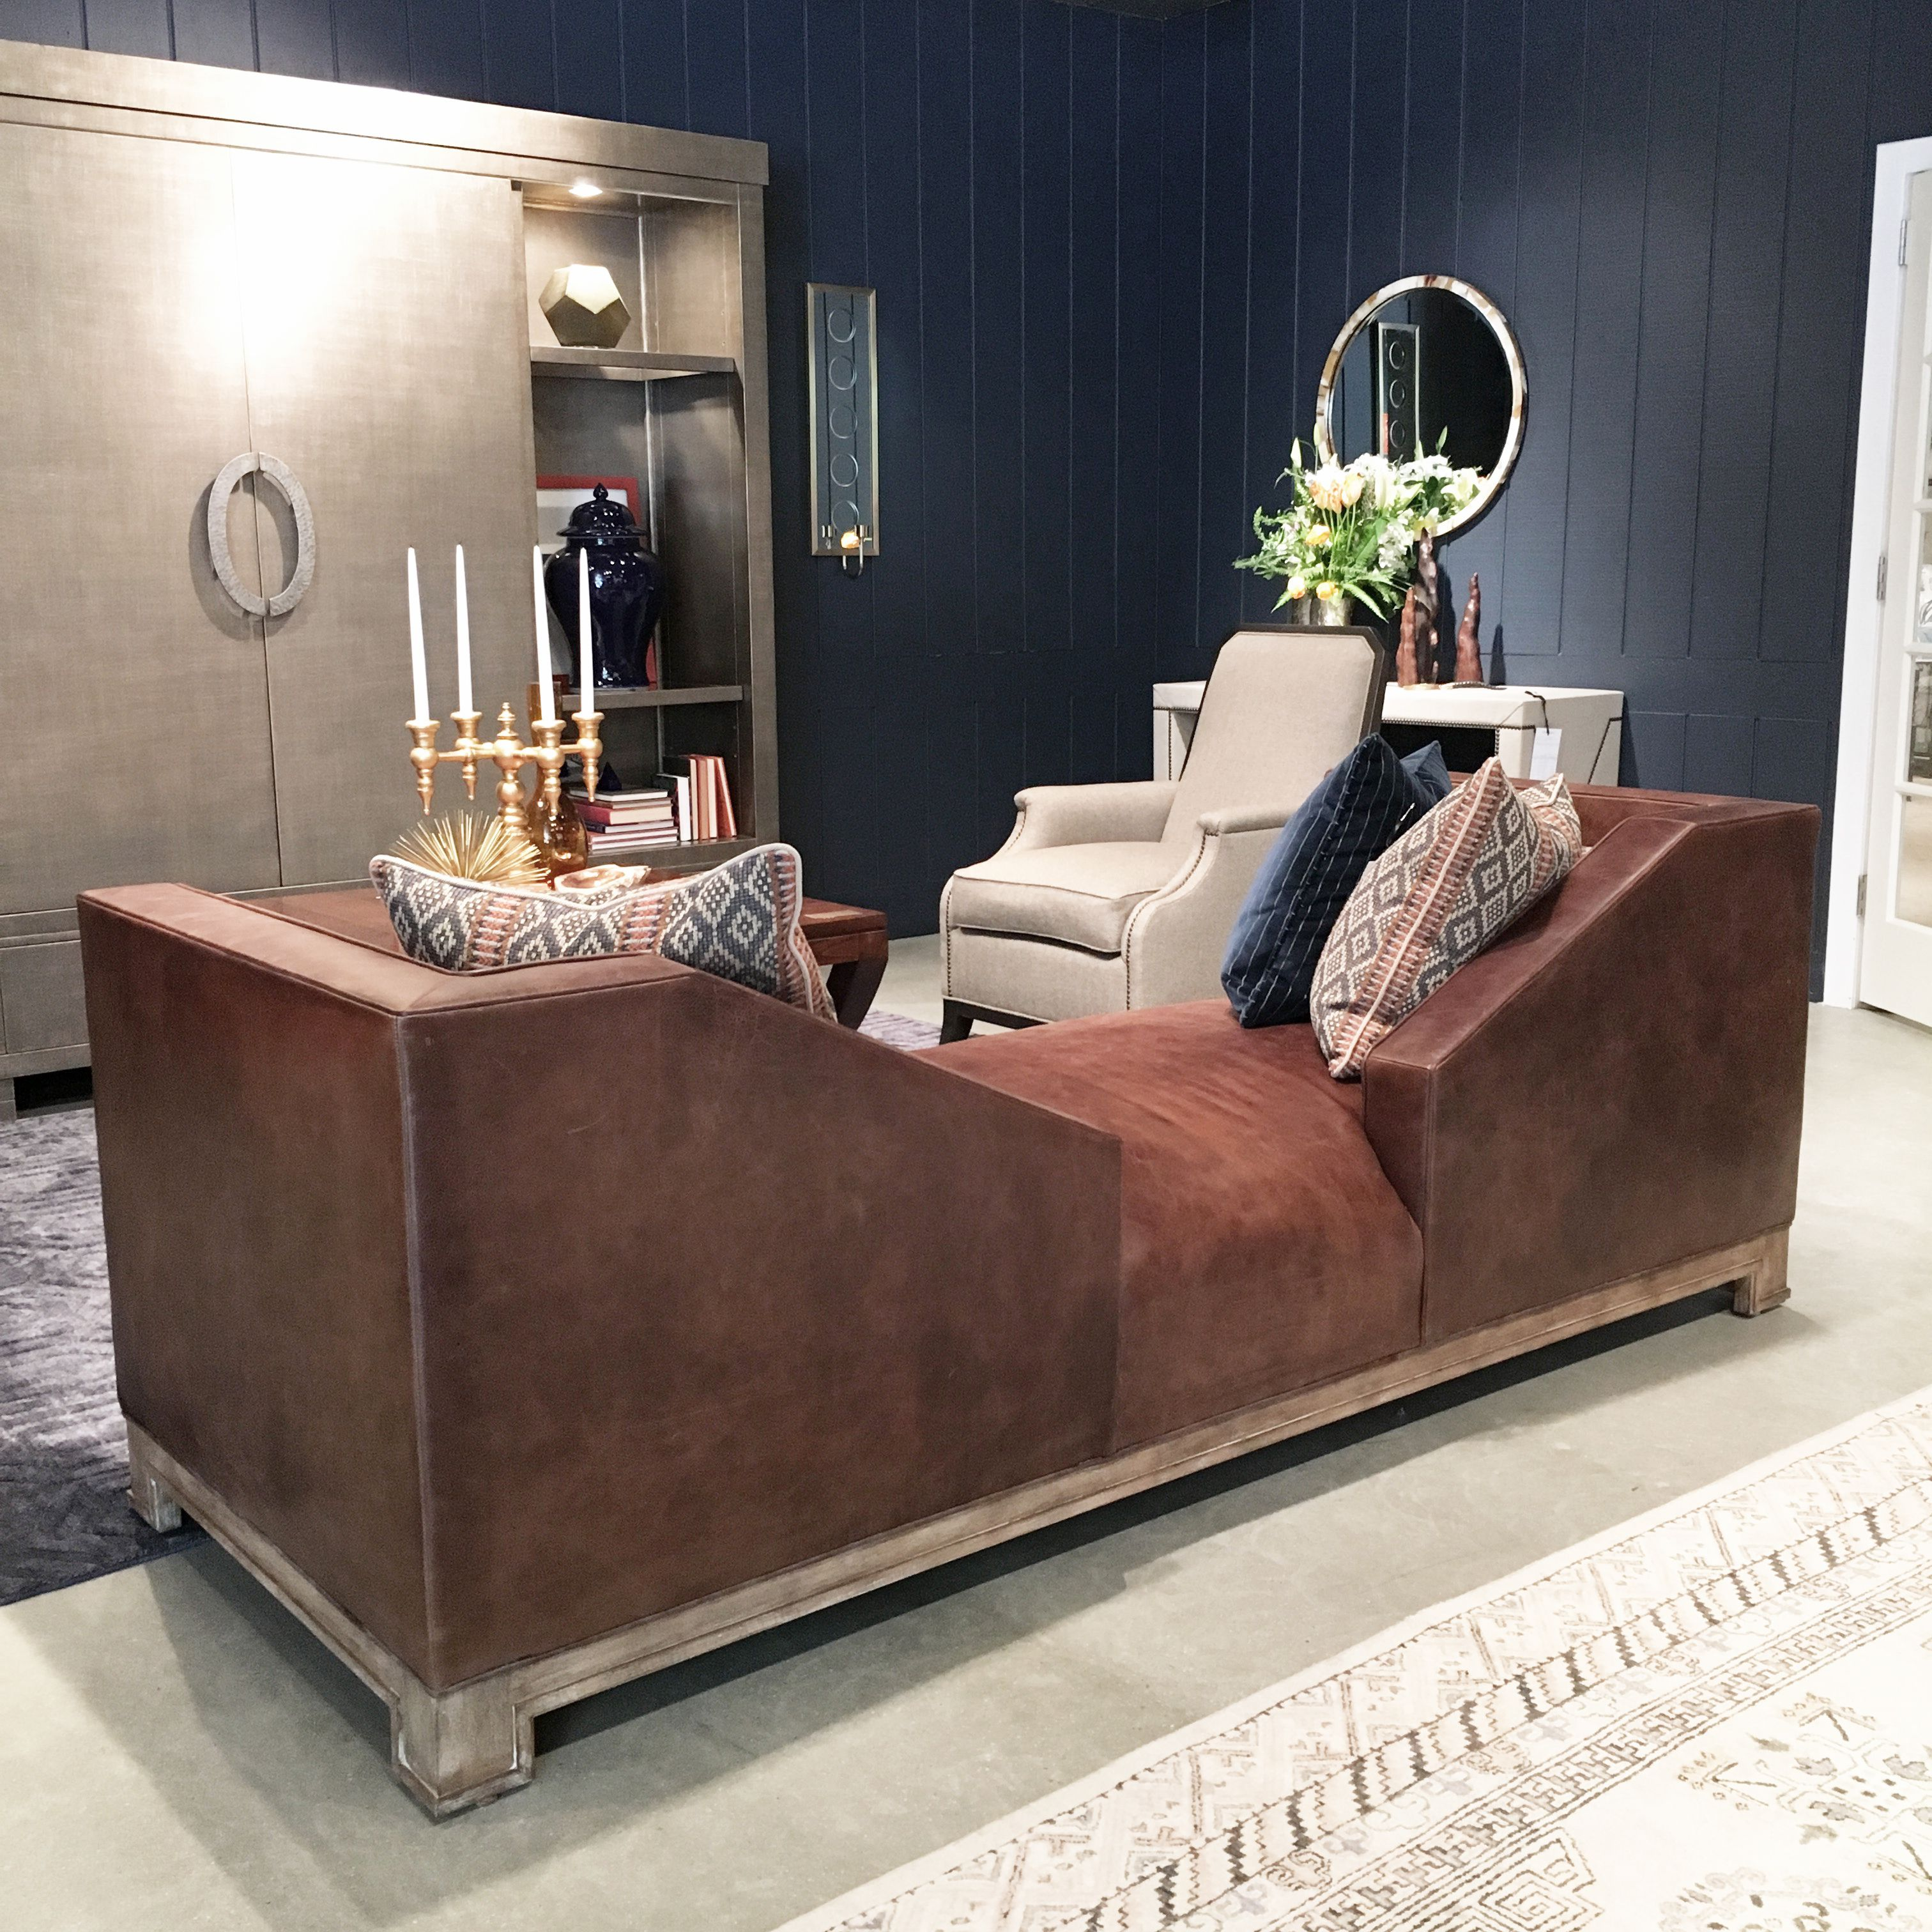 wesley hall sofas port royal prestige small rattan corner sofa set social by inc 310 n hamilton street every single detail has been attended to down the plinth base